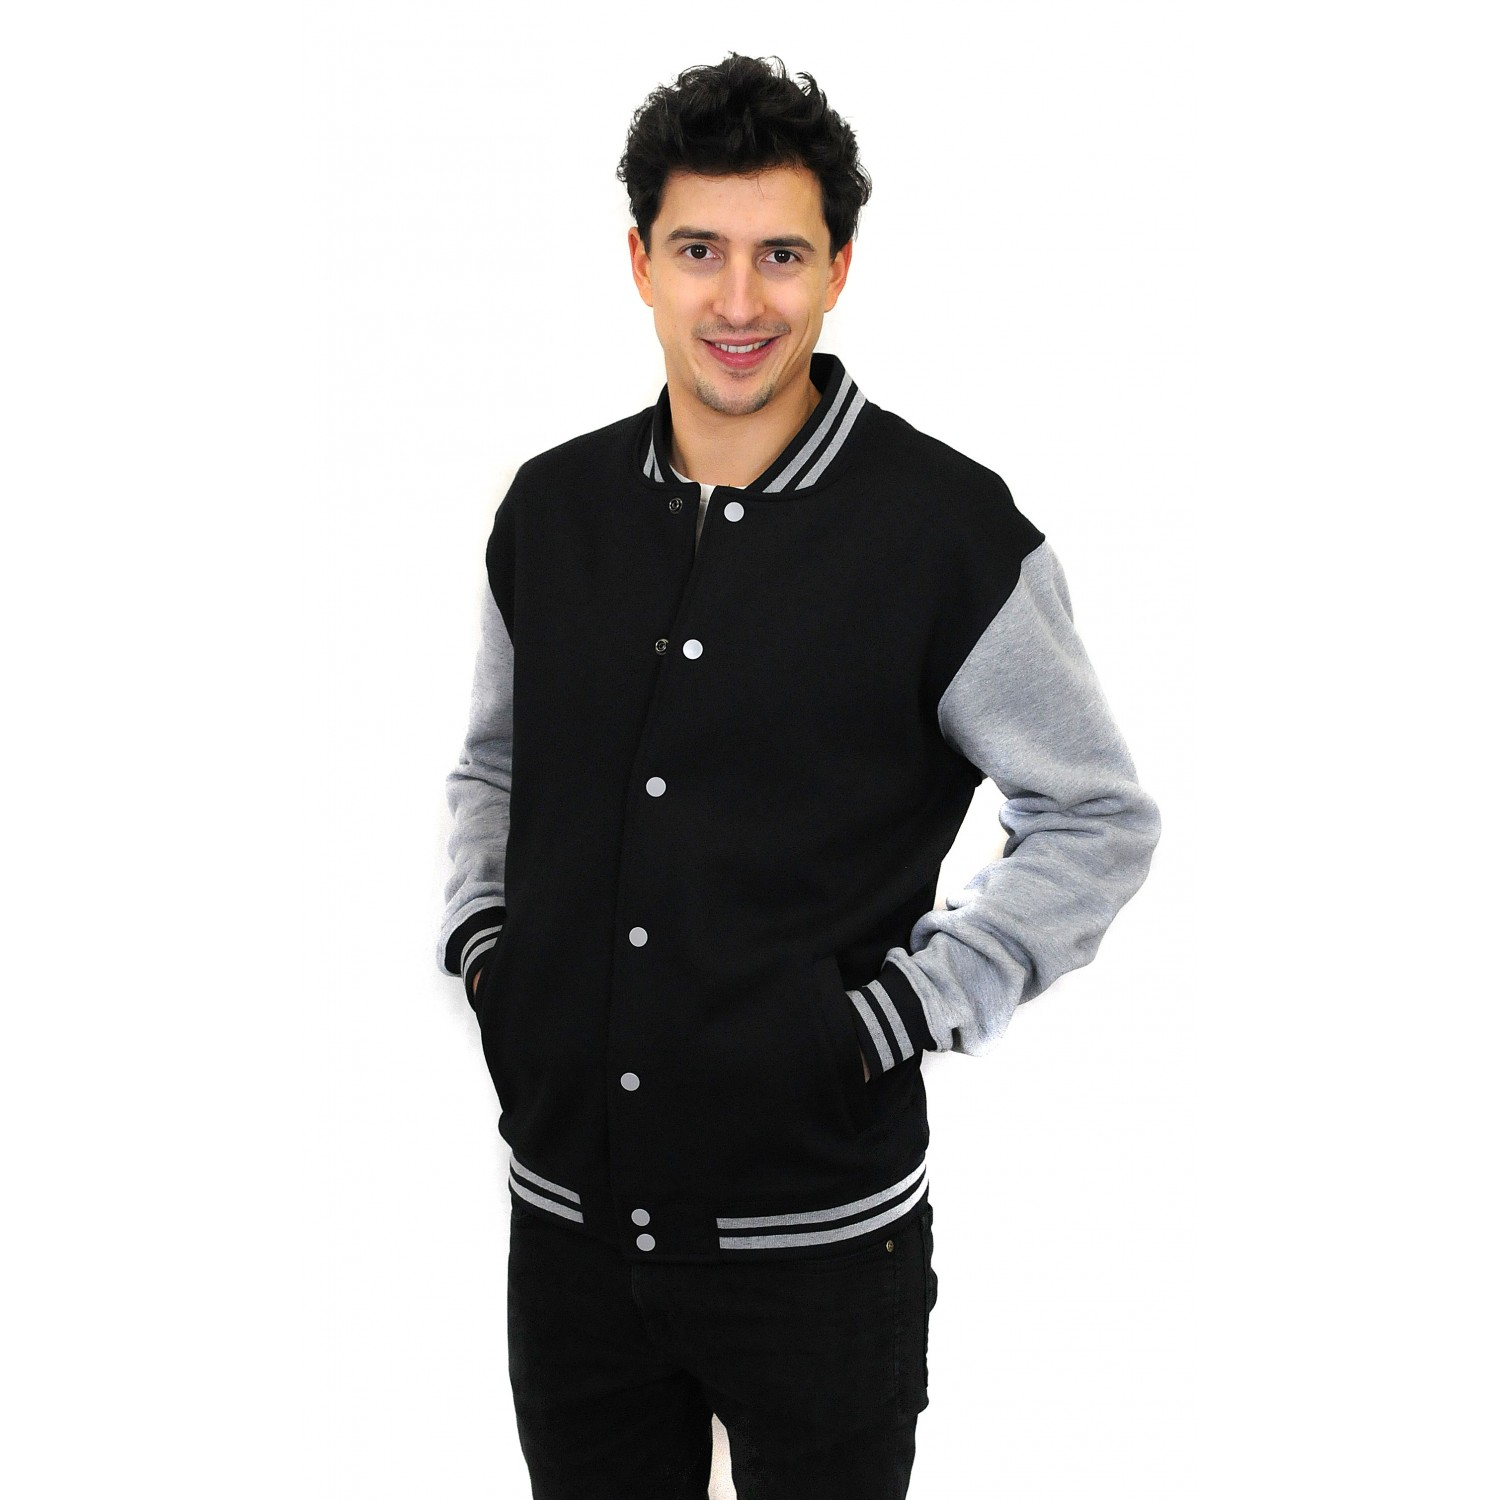 ROCKIT College Jacket